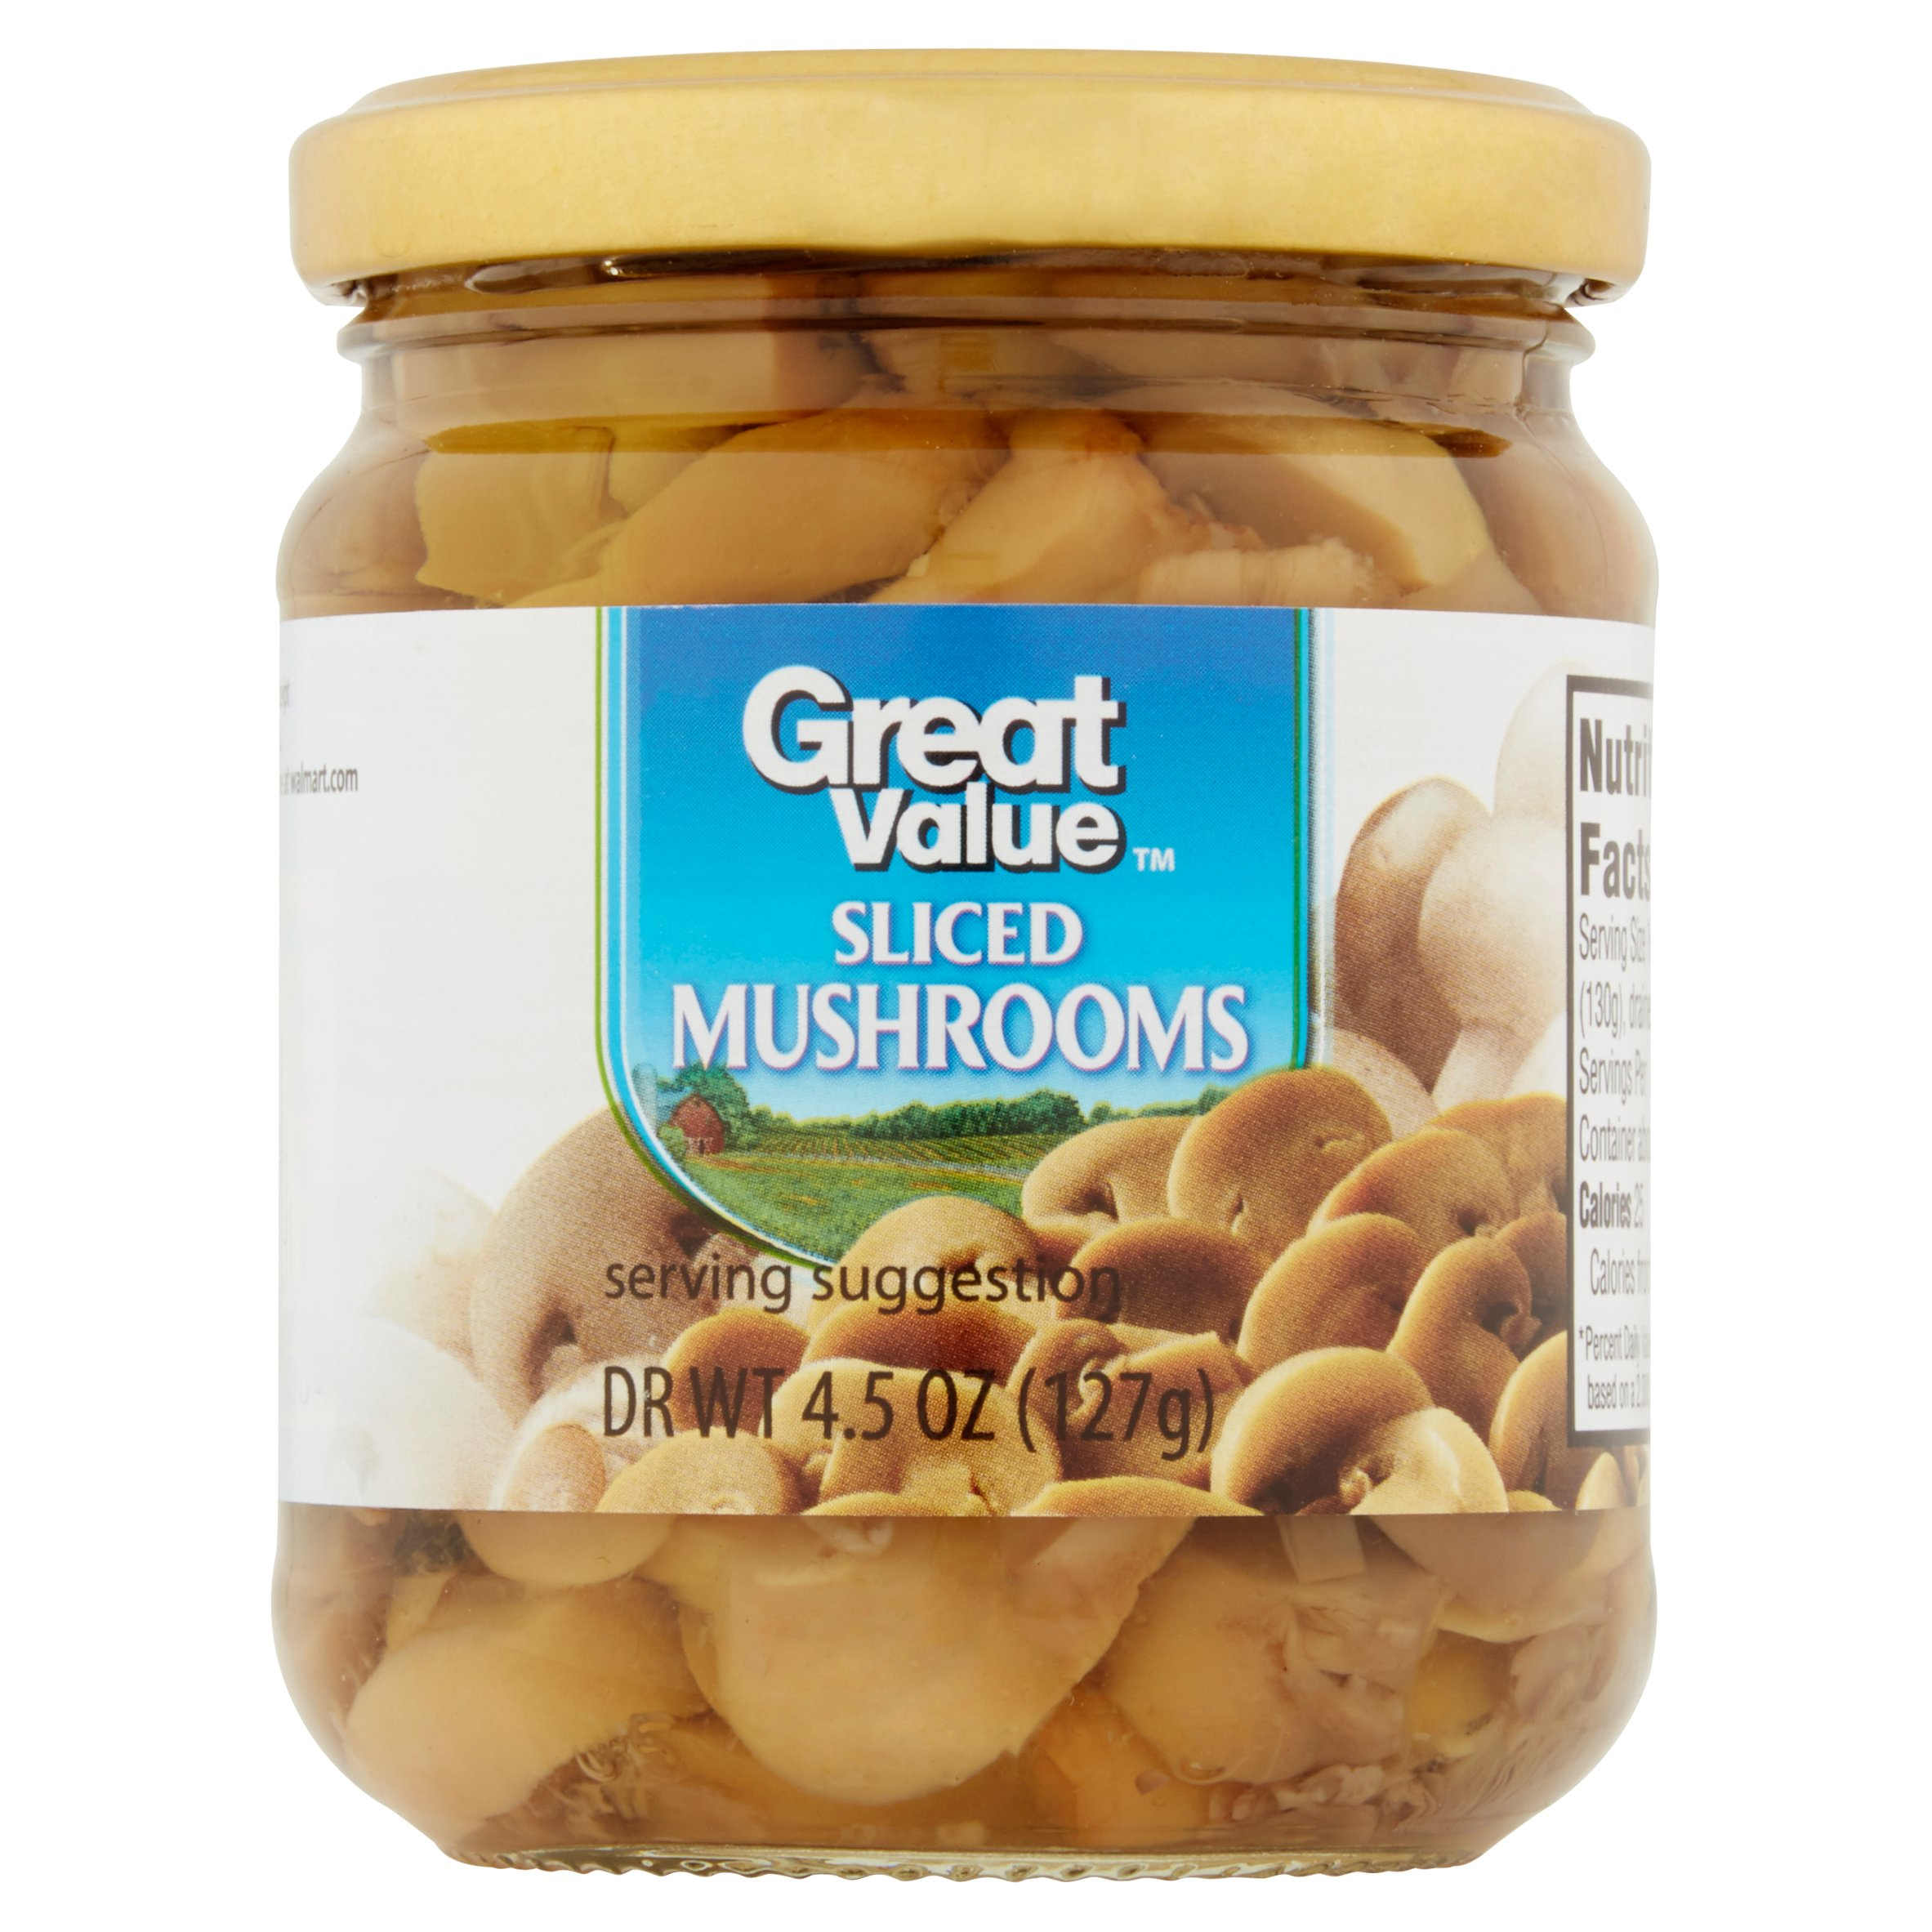 Great Value Sliced Mushrooms, 4.5 oz by Wal-Mart Stores, Inc.